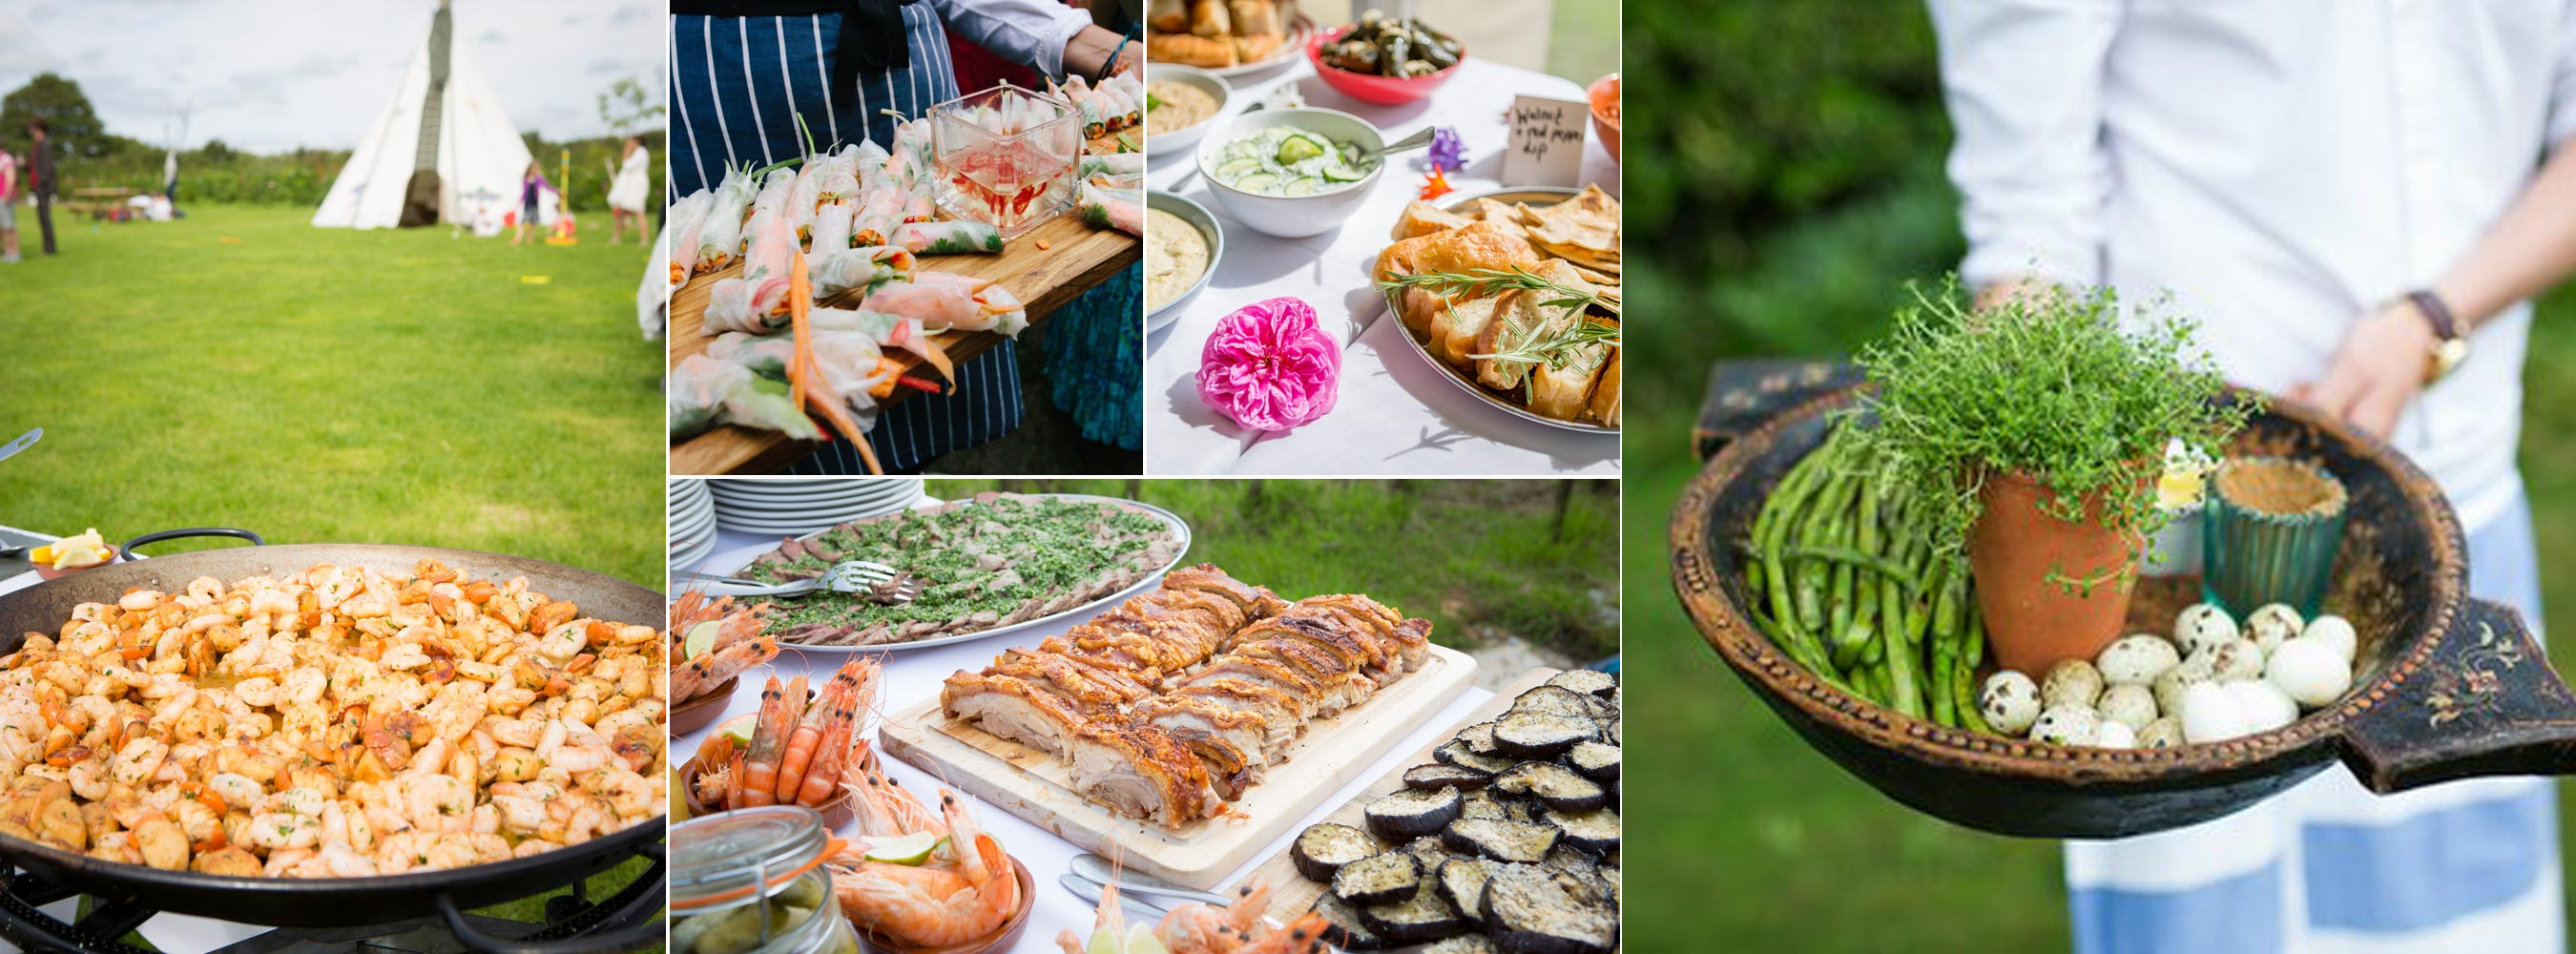 Food caterers Kerras catering Fee Turner Catering Snails pace cafe